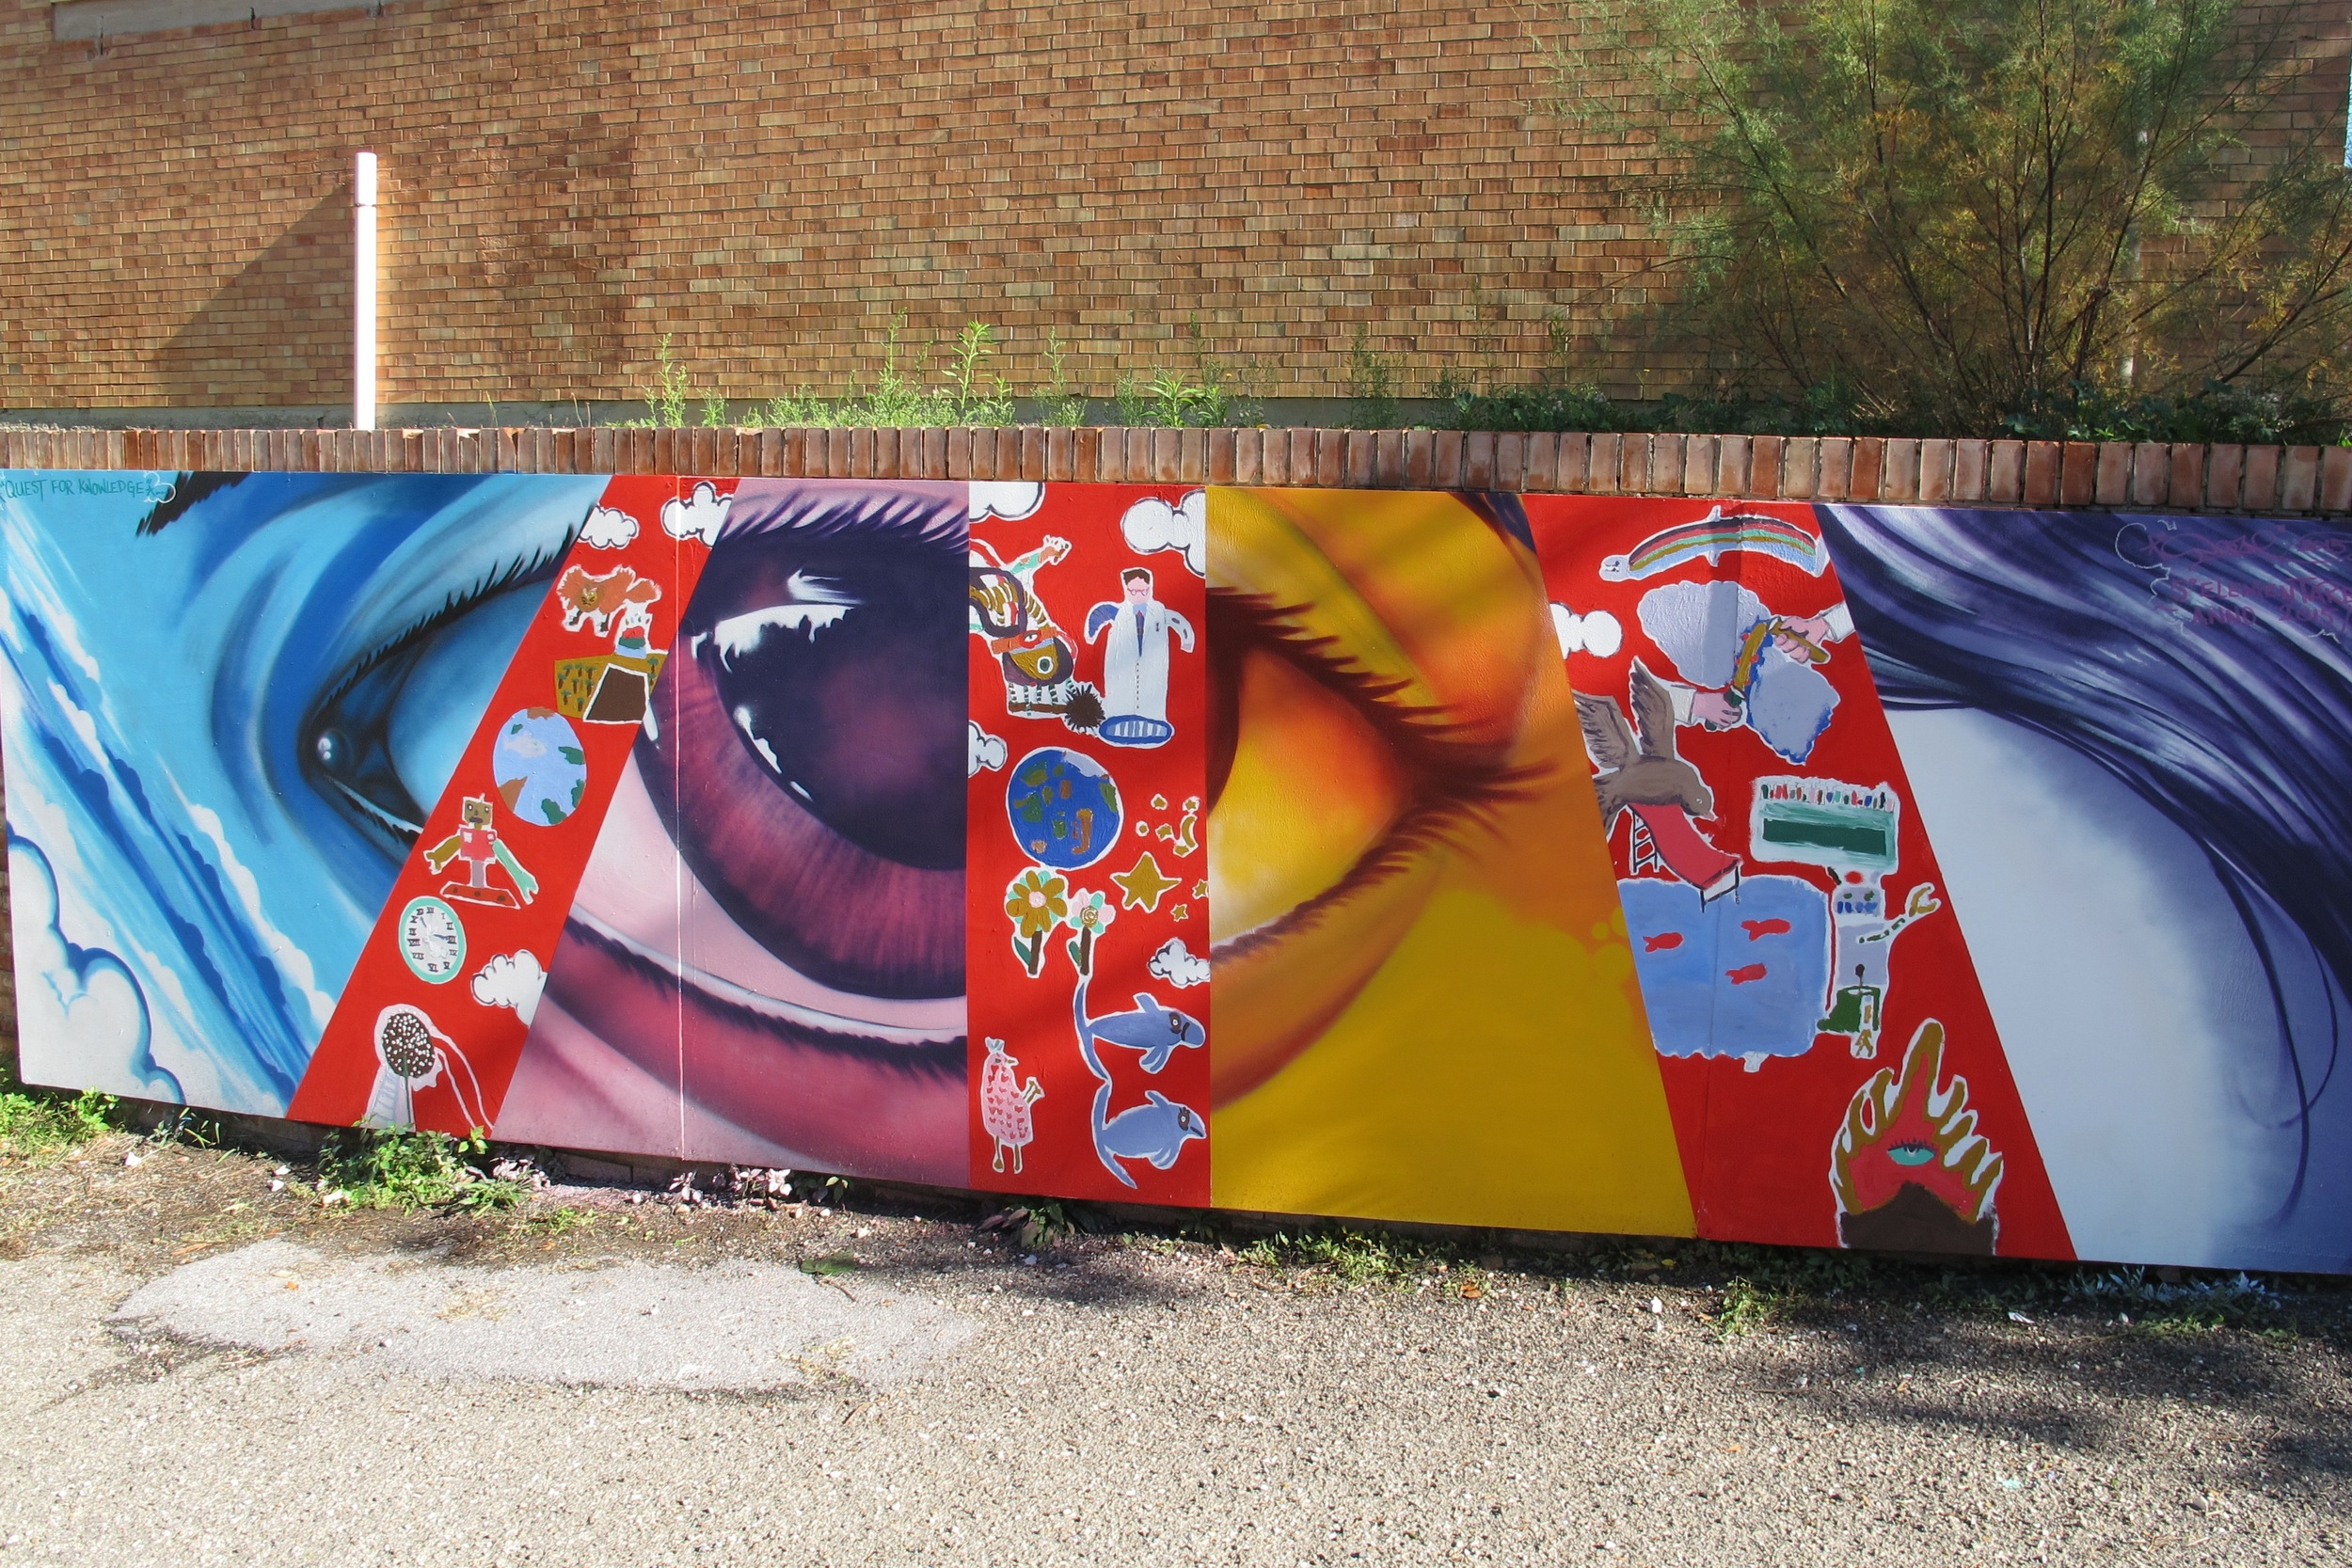 Completed mural with students of Palaia.